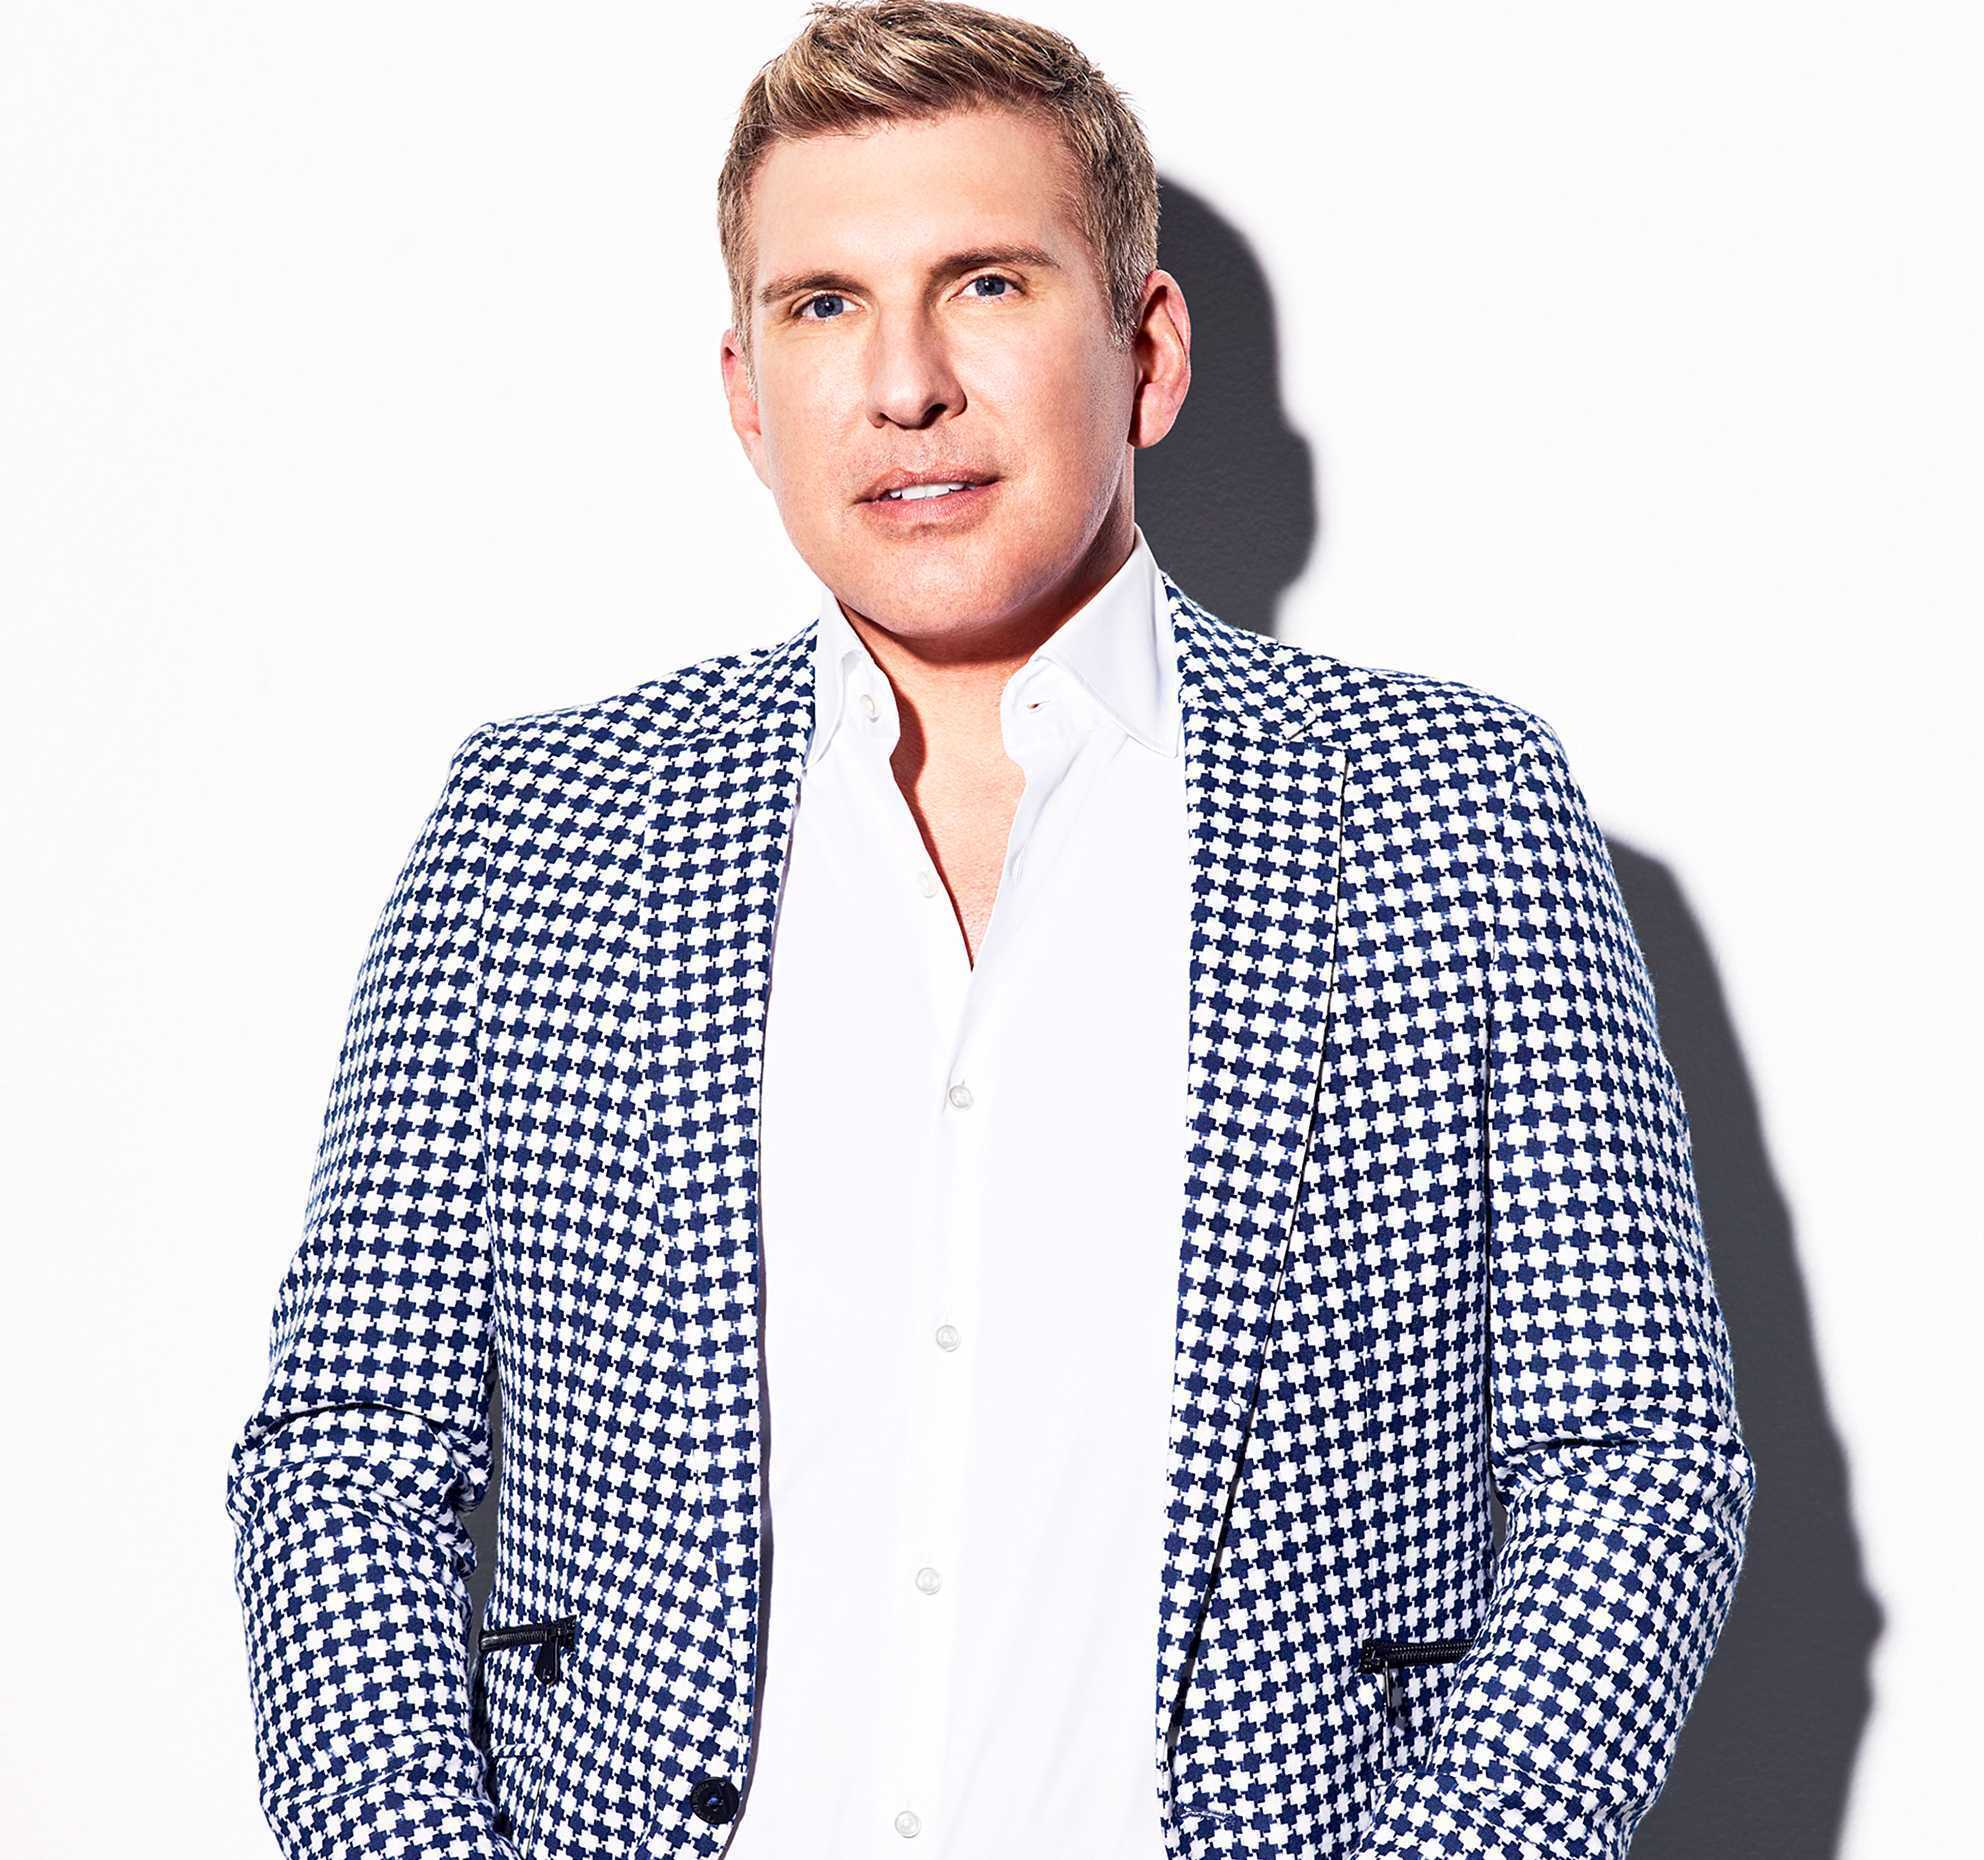 Todd Chrisley Career